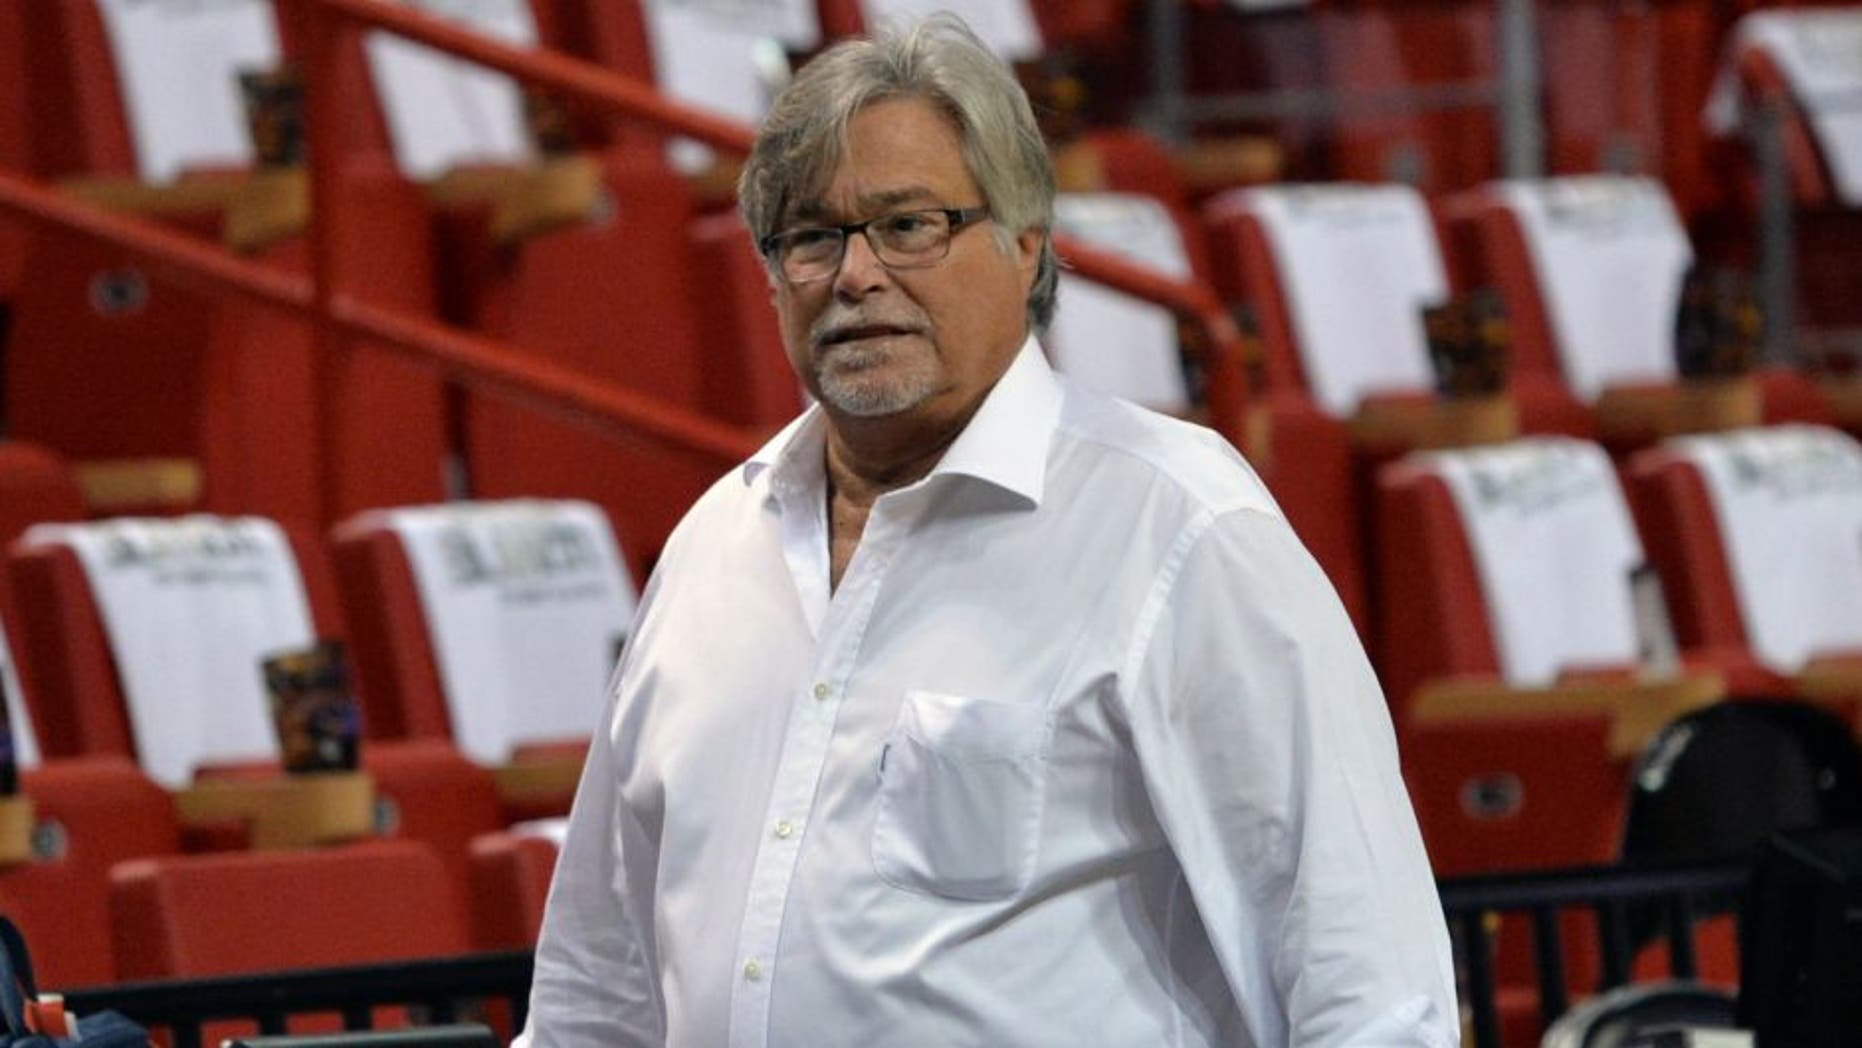 May 26, 2014; Miami, FL, USA; Miami Heat owner Micky Arison prior to a game against the Indiana Pacers in game four of the Eastern Conference Finals of the 2014 NBA Playoffs at American Airlines Arena. Mandatory Credit: Steve Mitchell-USA TODAY Sports